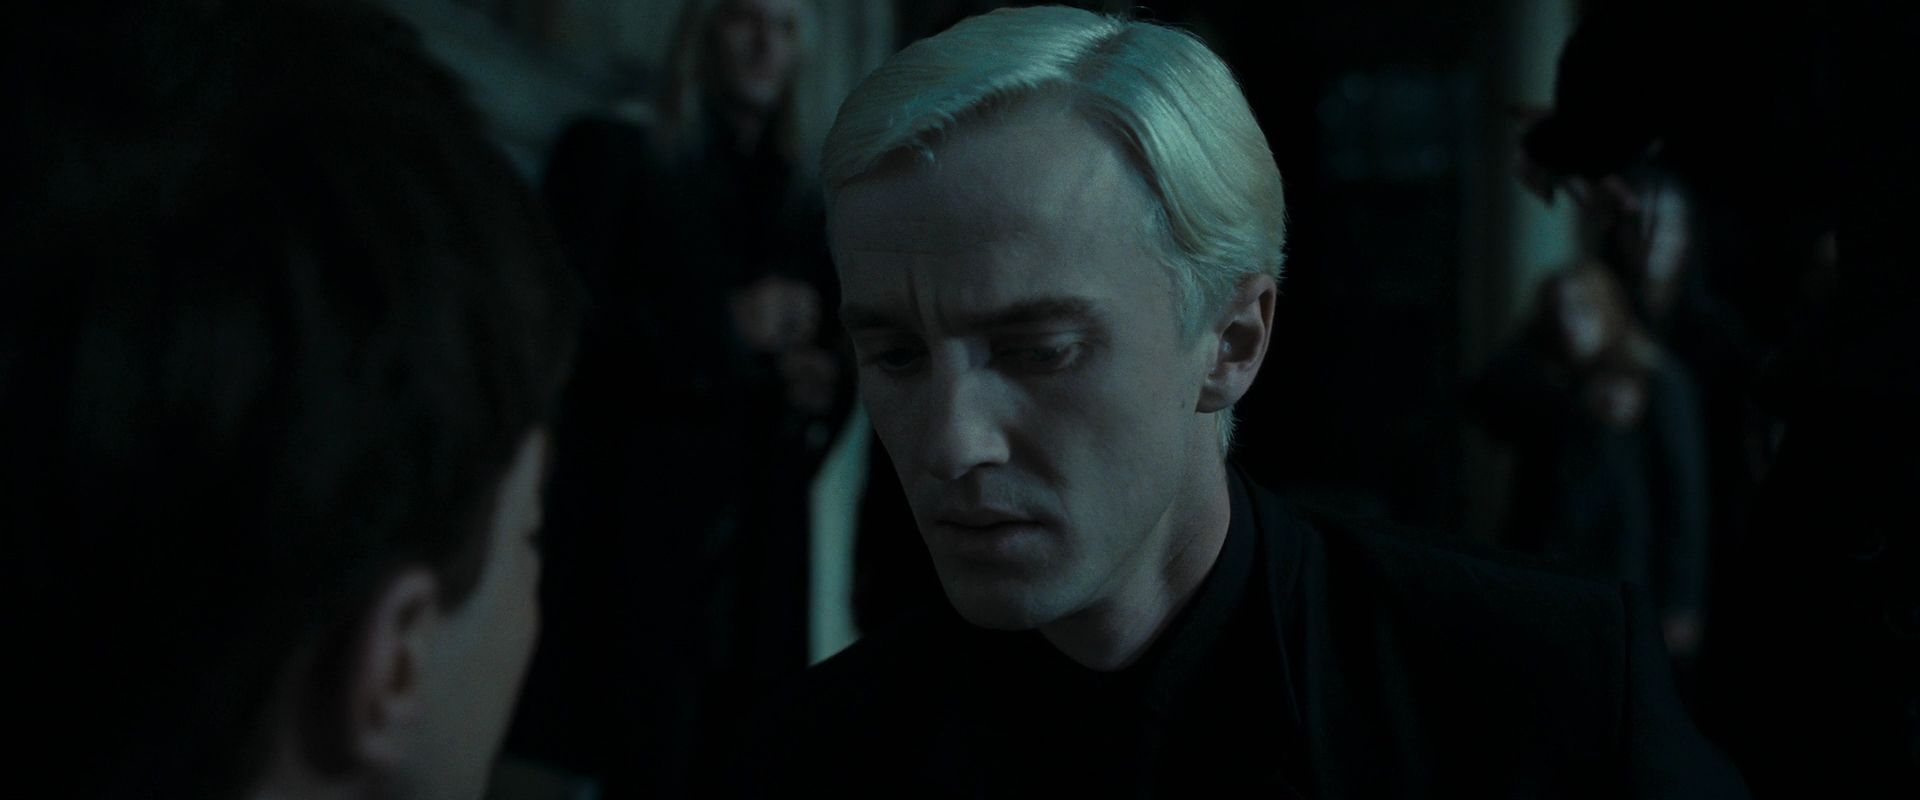 Draco in DH part 1 - Draco Malfoy Image (20758680) - Fanpop